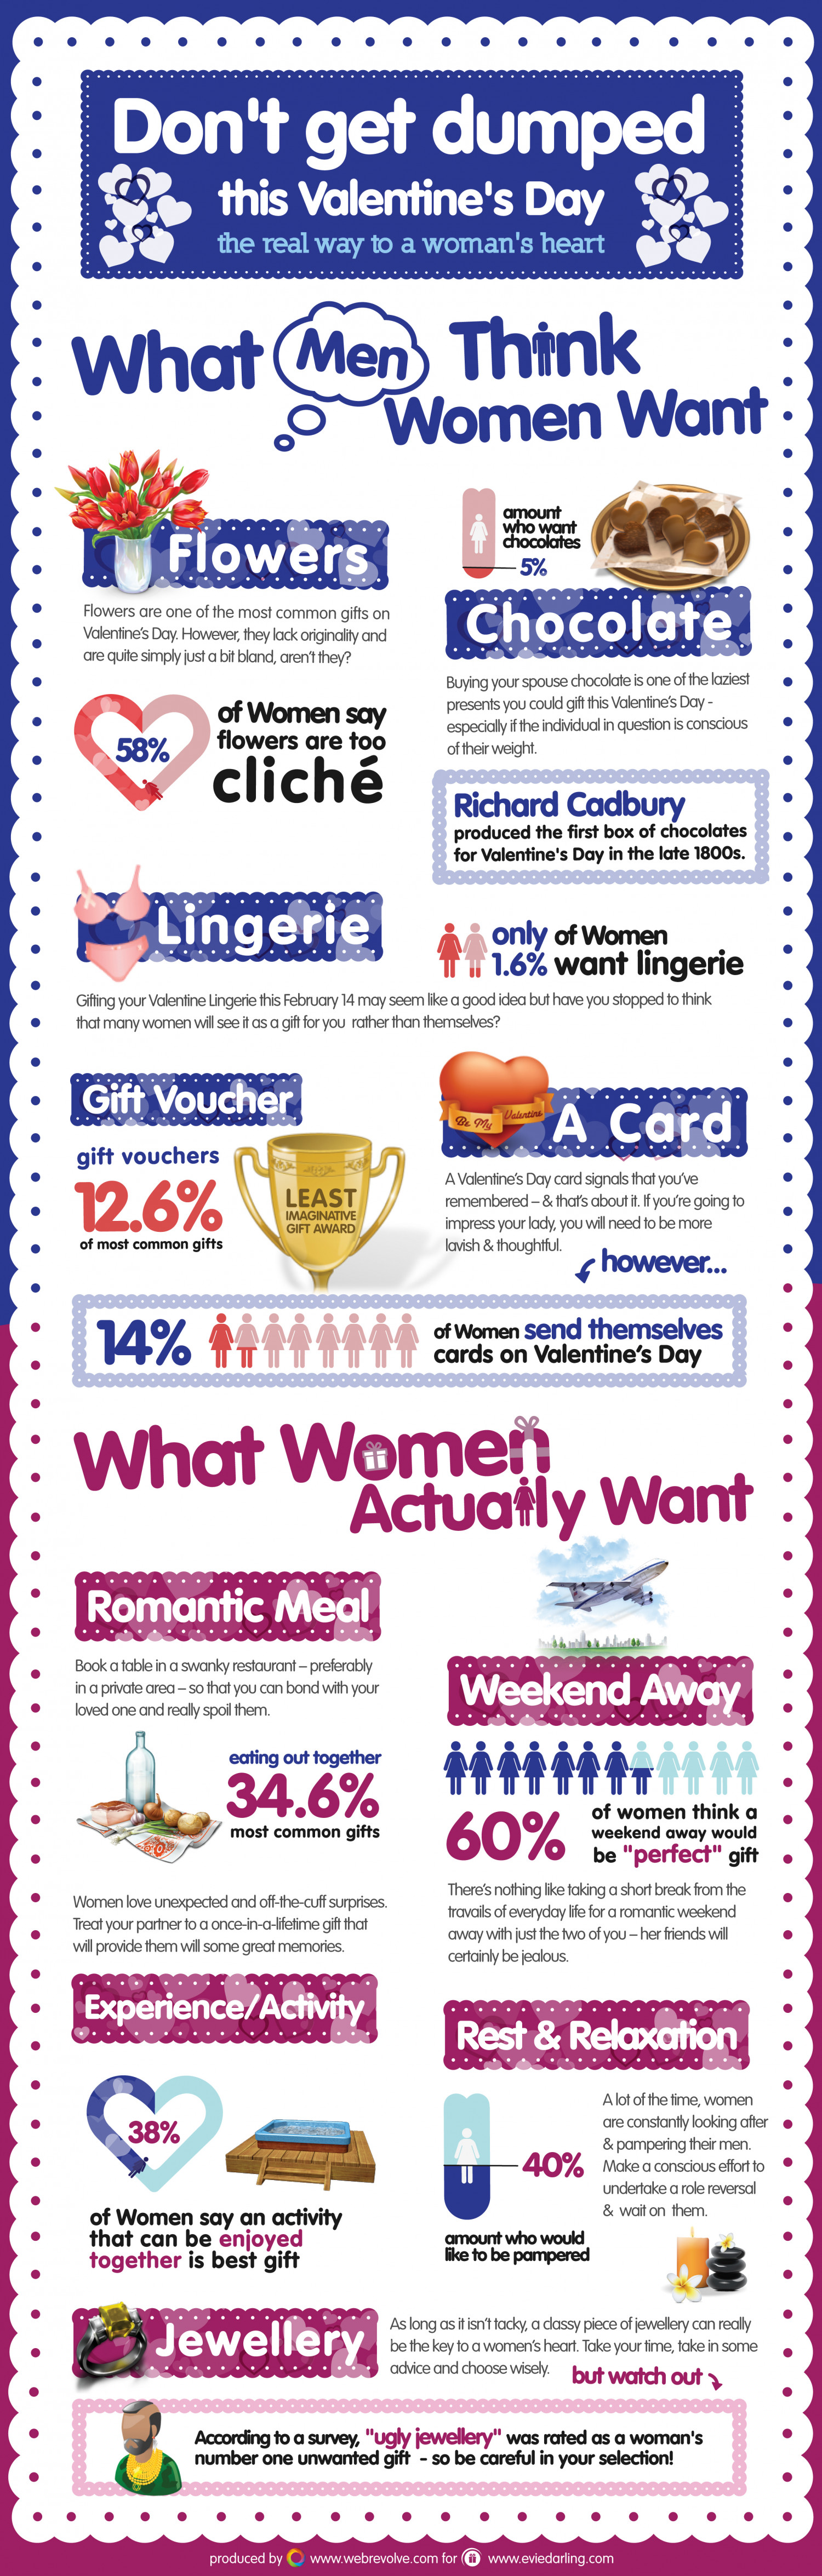 Don't Get Dumped This Valentine's Day - The Real Way To A Woman's Heart Infographic